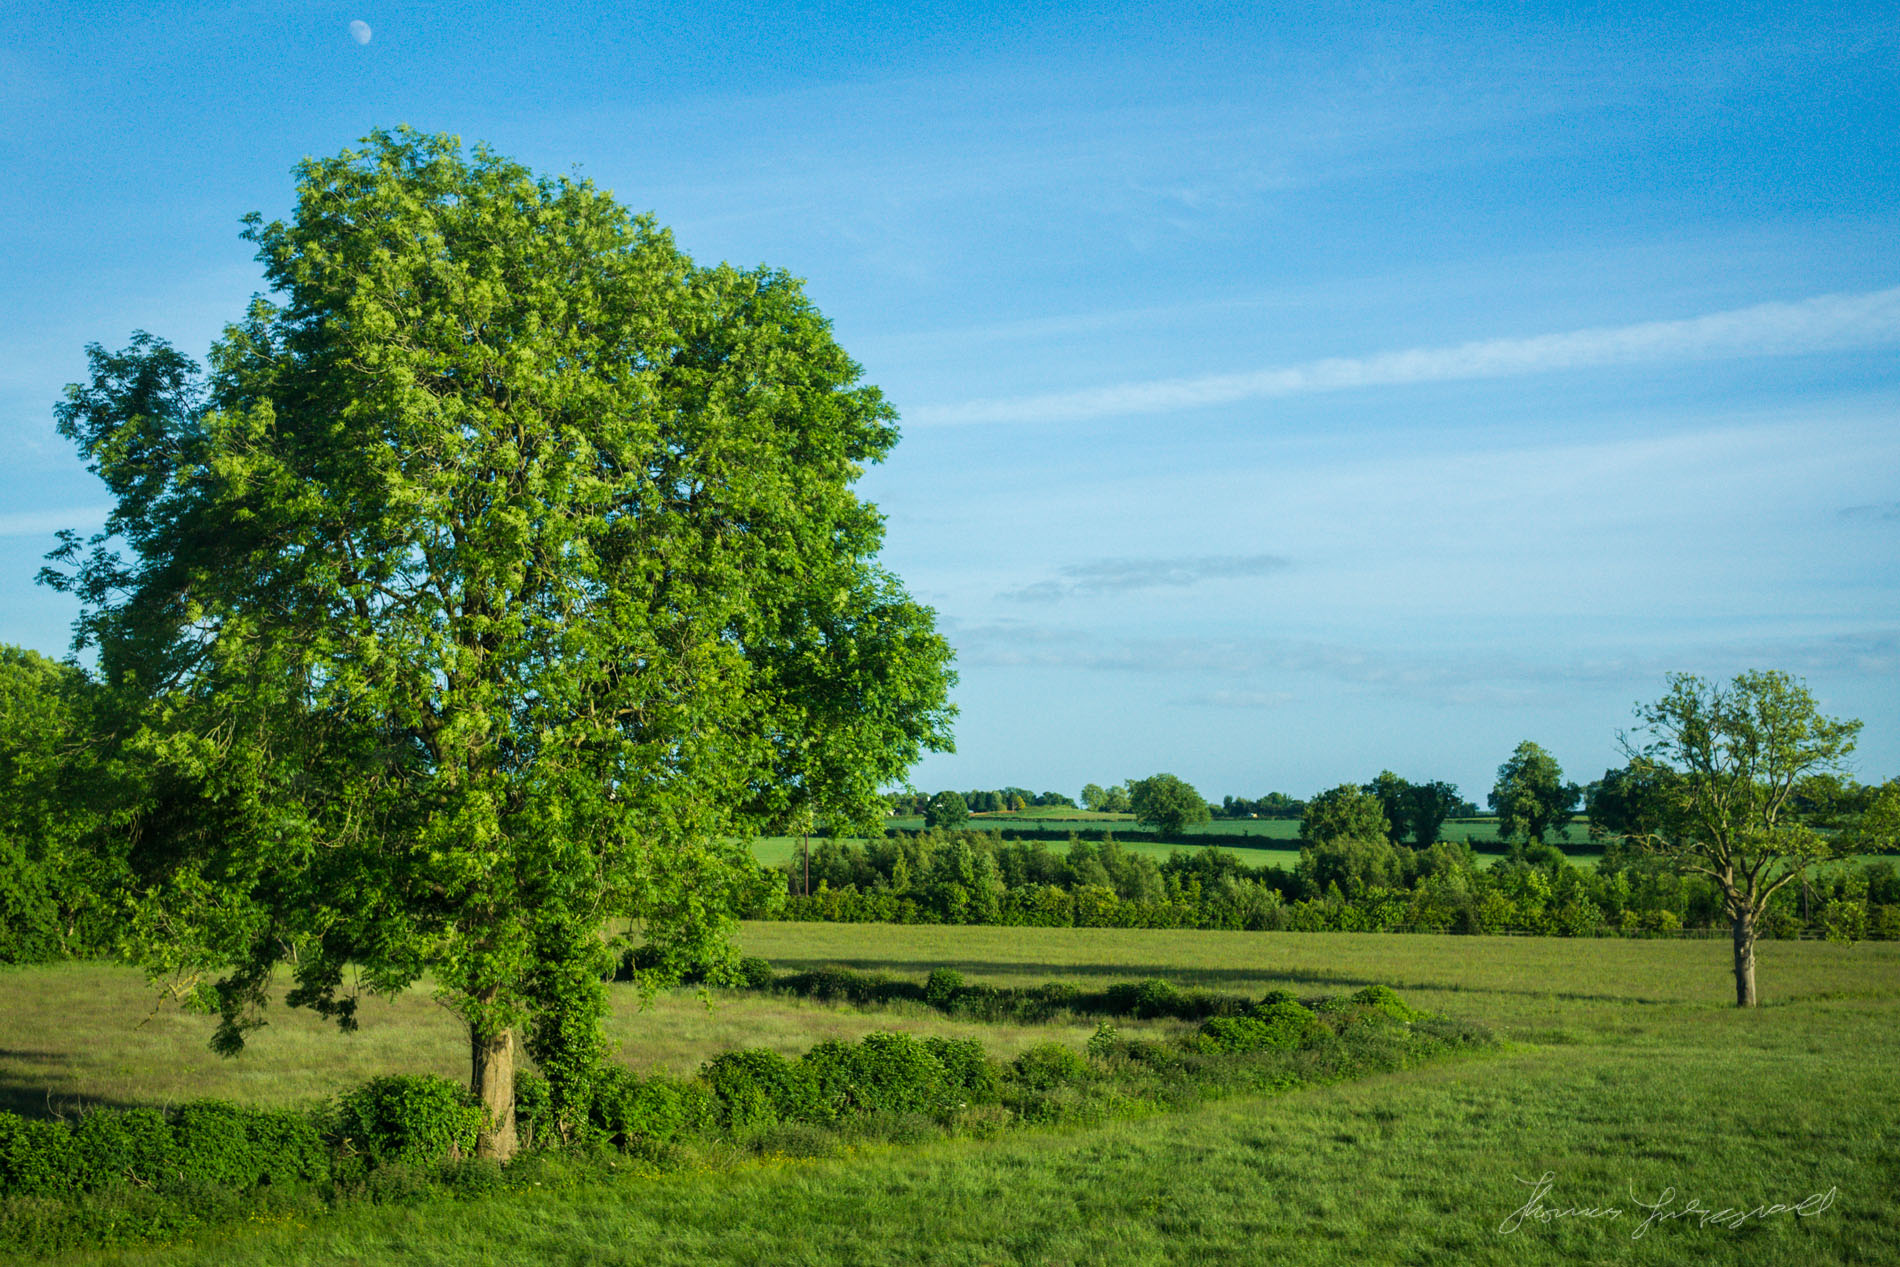 Big Tree in the Midands as seen from a Train